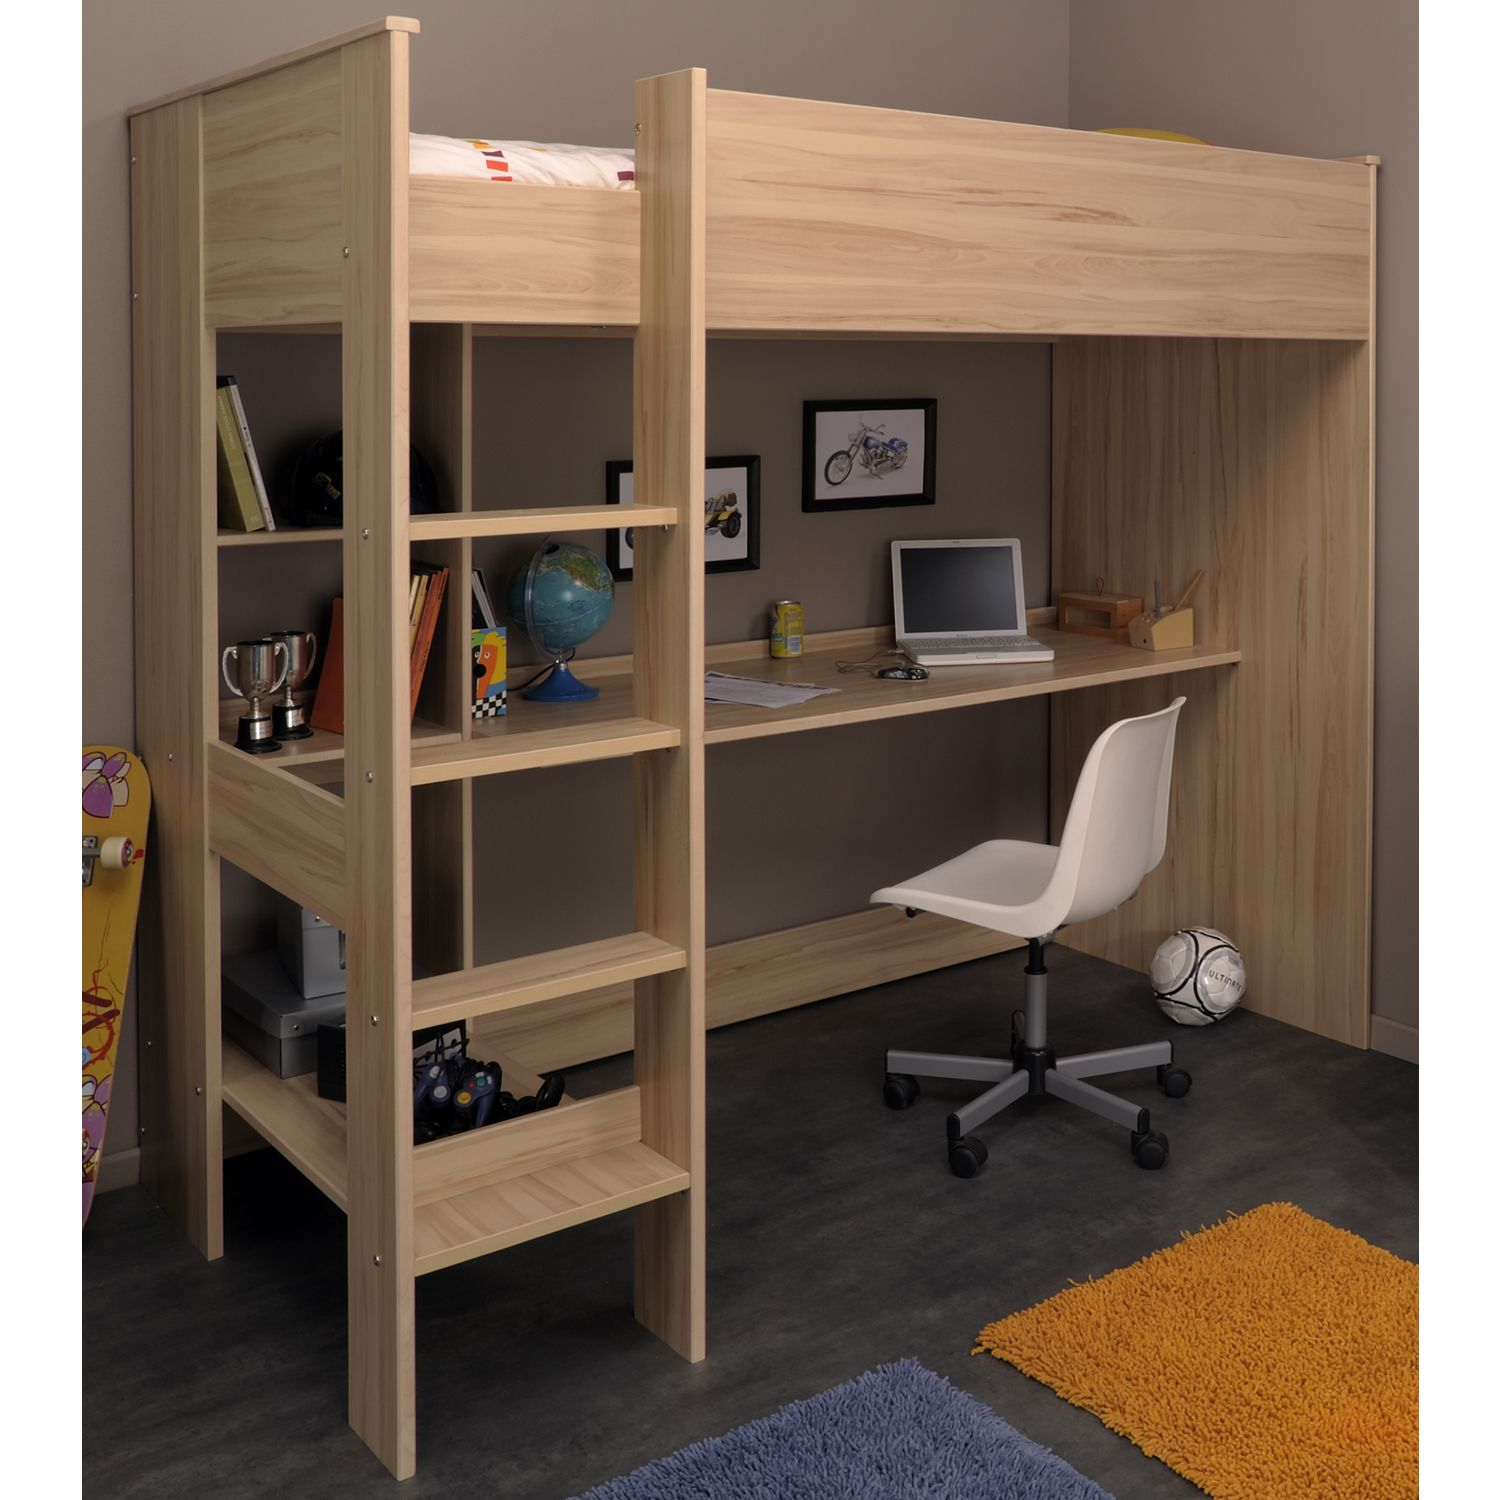 This Is Exactly What I M Going For High Bed With The Ladder On The Left Coming Straight Down And No Shelf